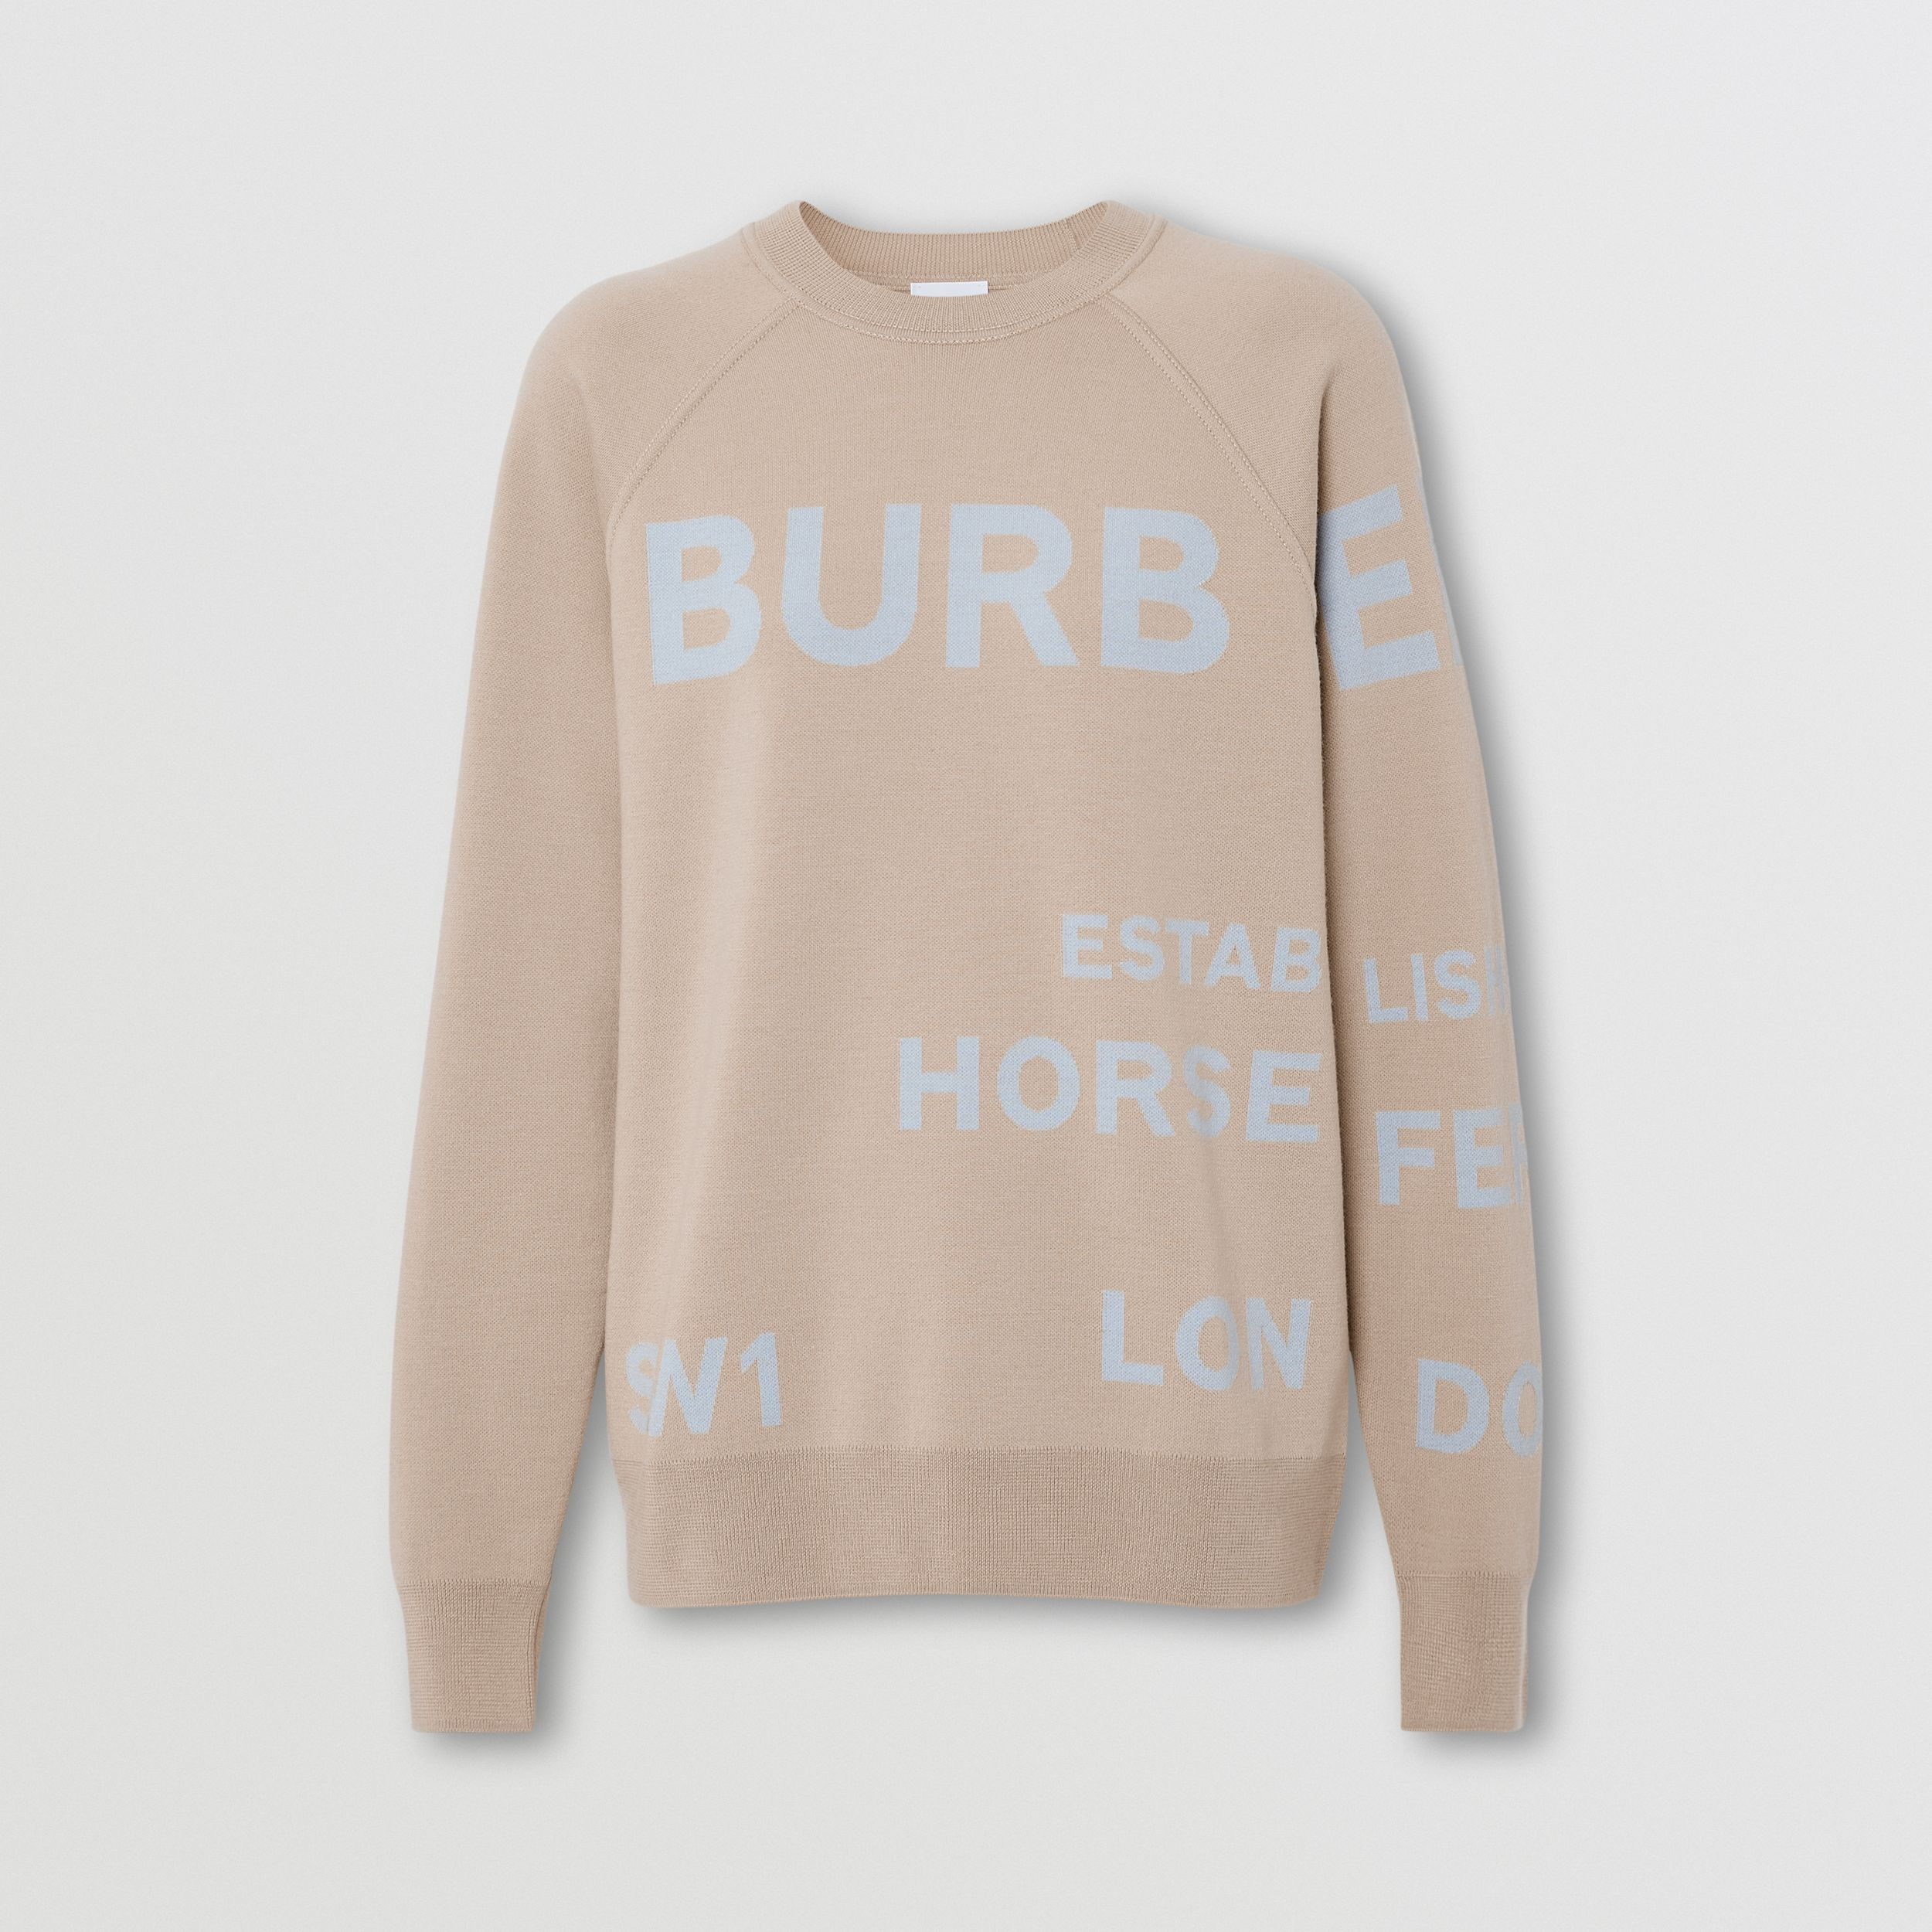 Horseferry Merino Wool Blend Jacquard Sweater in Soft Fawn - Women | Burberry United Kingdom - 4